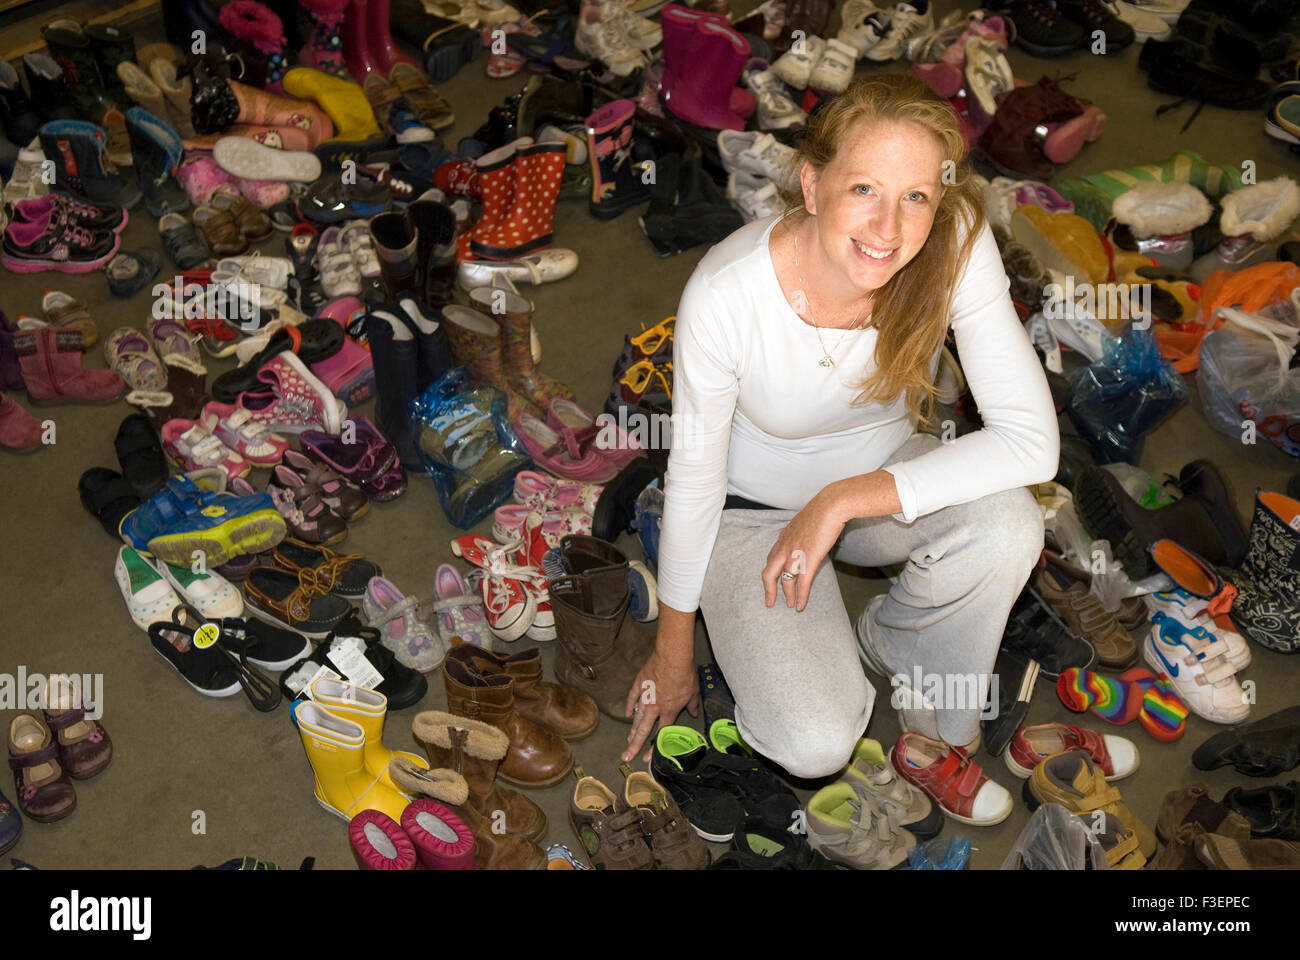 Co-founder of an appeal for donations to help refugees fleeing war torn Syria surrounded by some of the donated - Stock Image